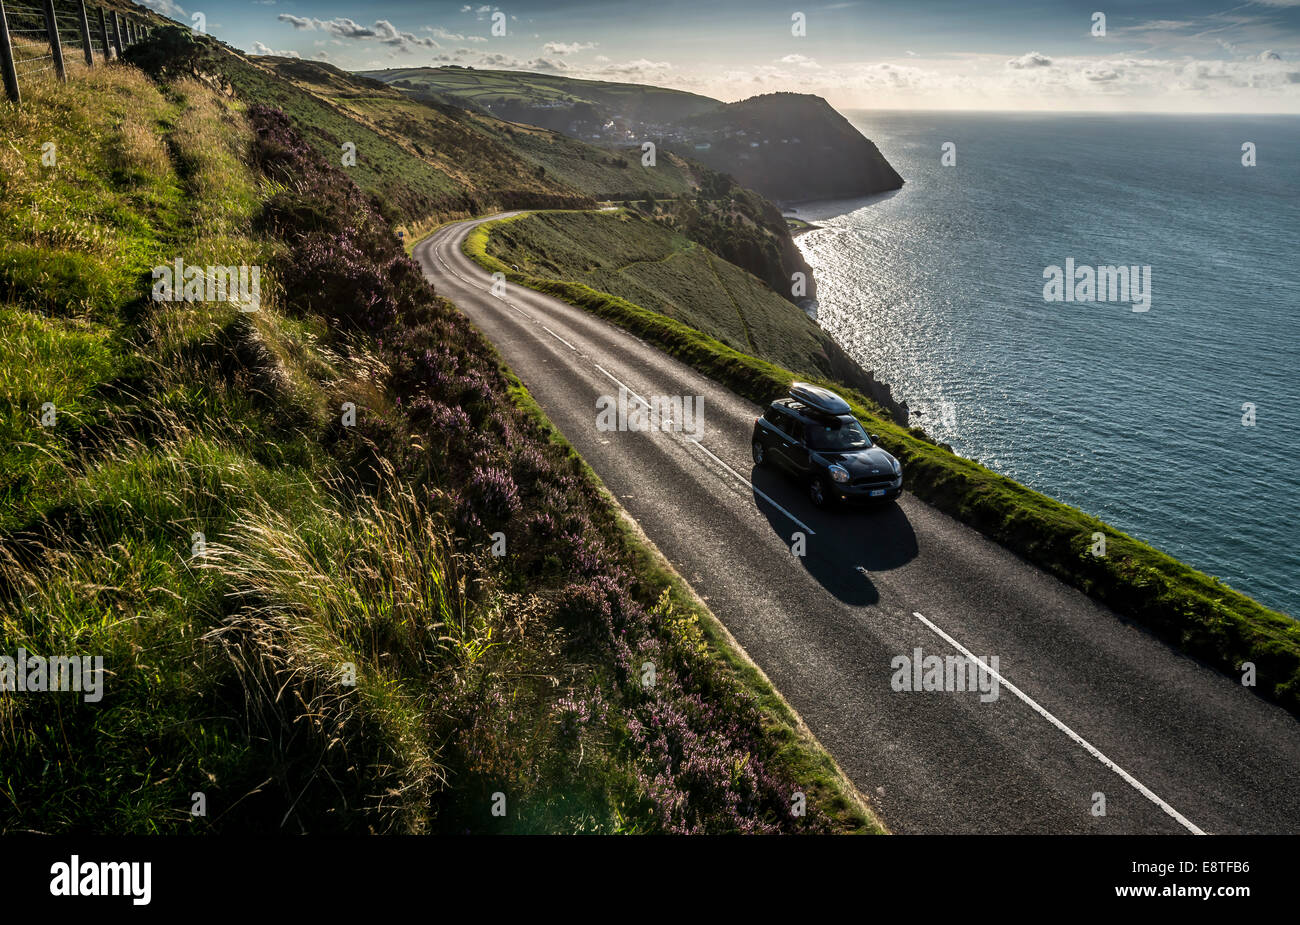 The Best Driving Roads In Britain The Best Driving Roads In Britain new picture